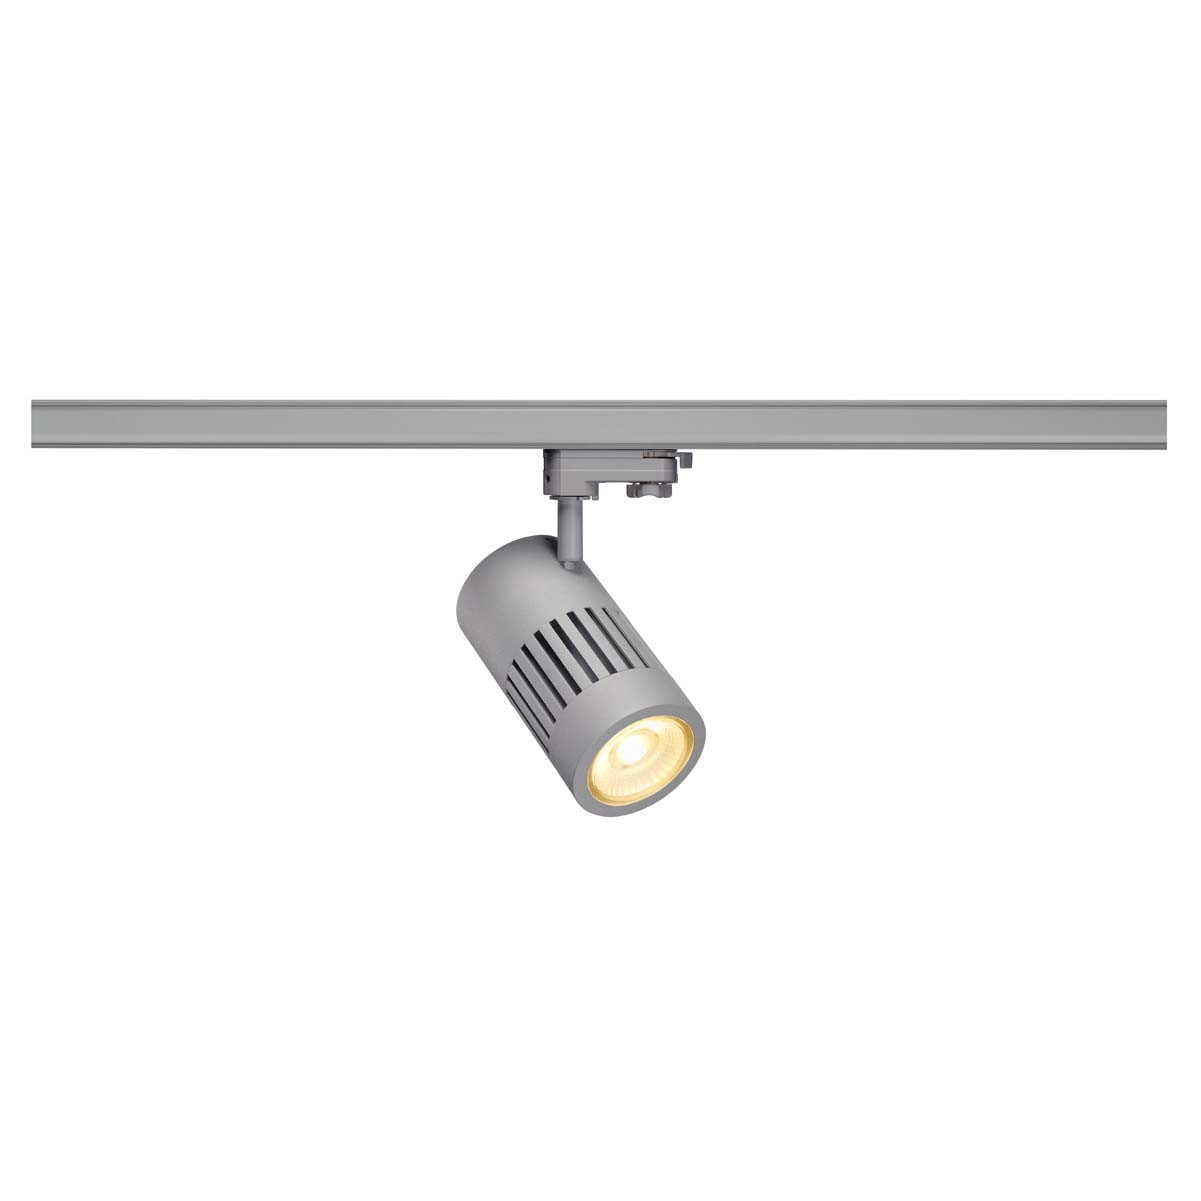 SLV 176094 STRUCTEC LED 30W, round, silver, rich colour, 60°, incl. 3-phase Adapter